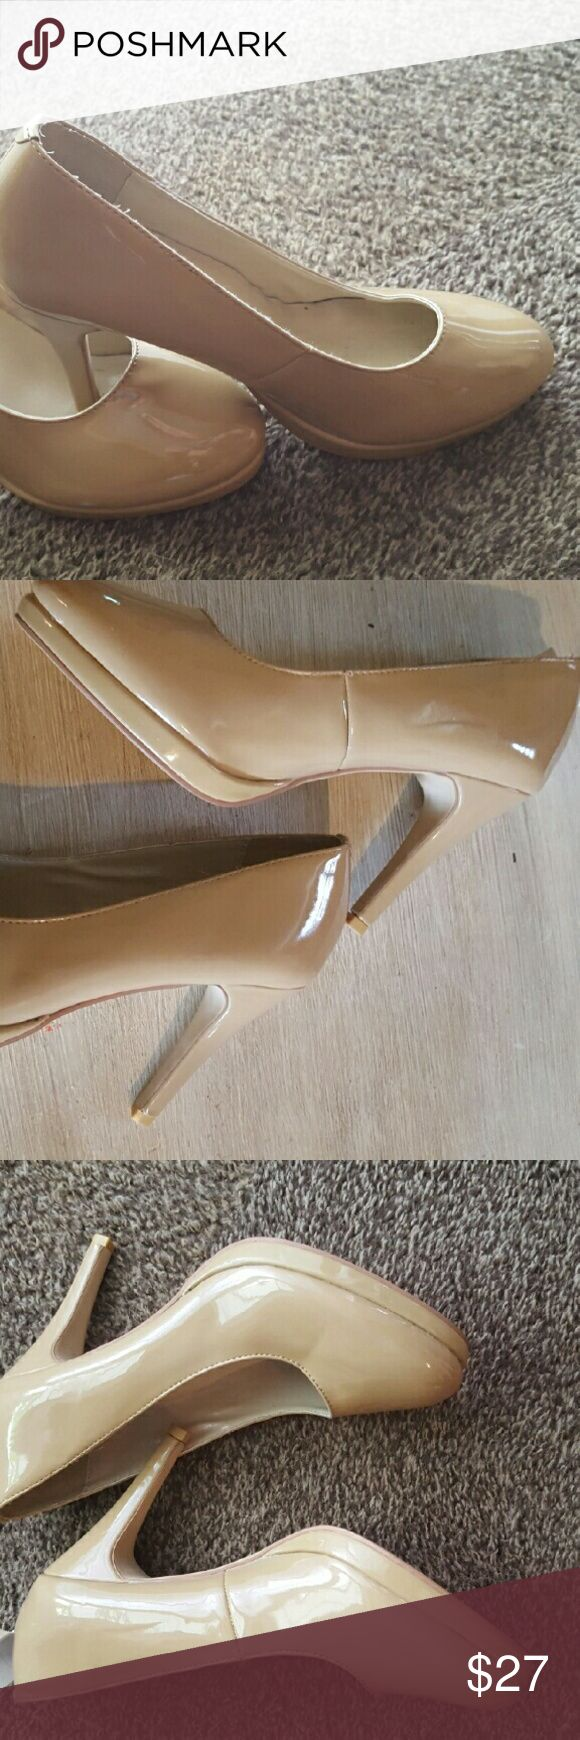 Nude/cream high heels cute for day, night, or work Lightly used, cute nude heels with slight platform on front of heel Christin michaels Shoes Heels